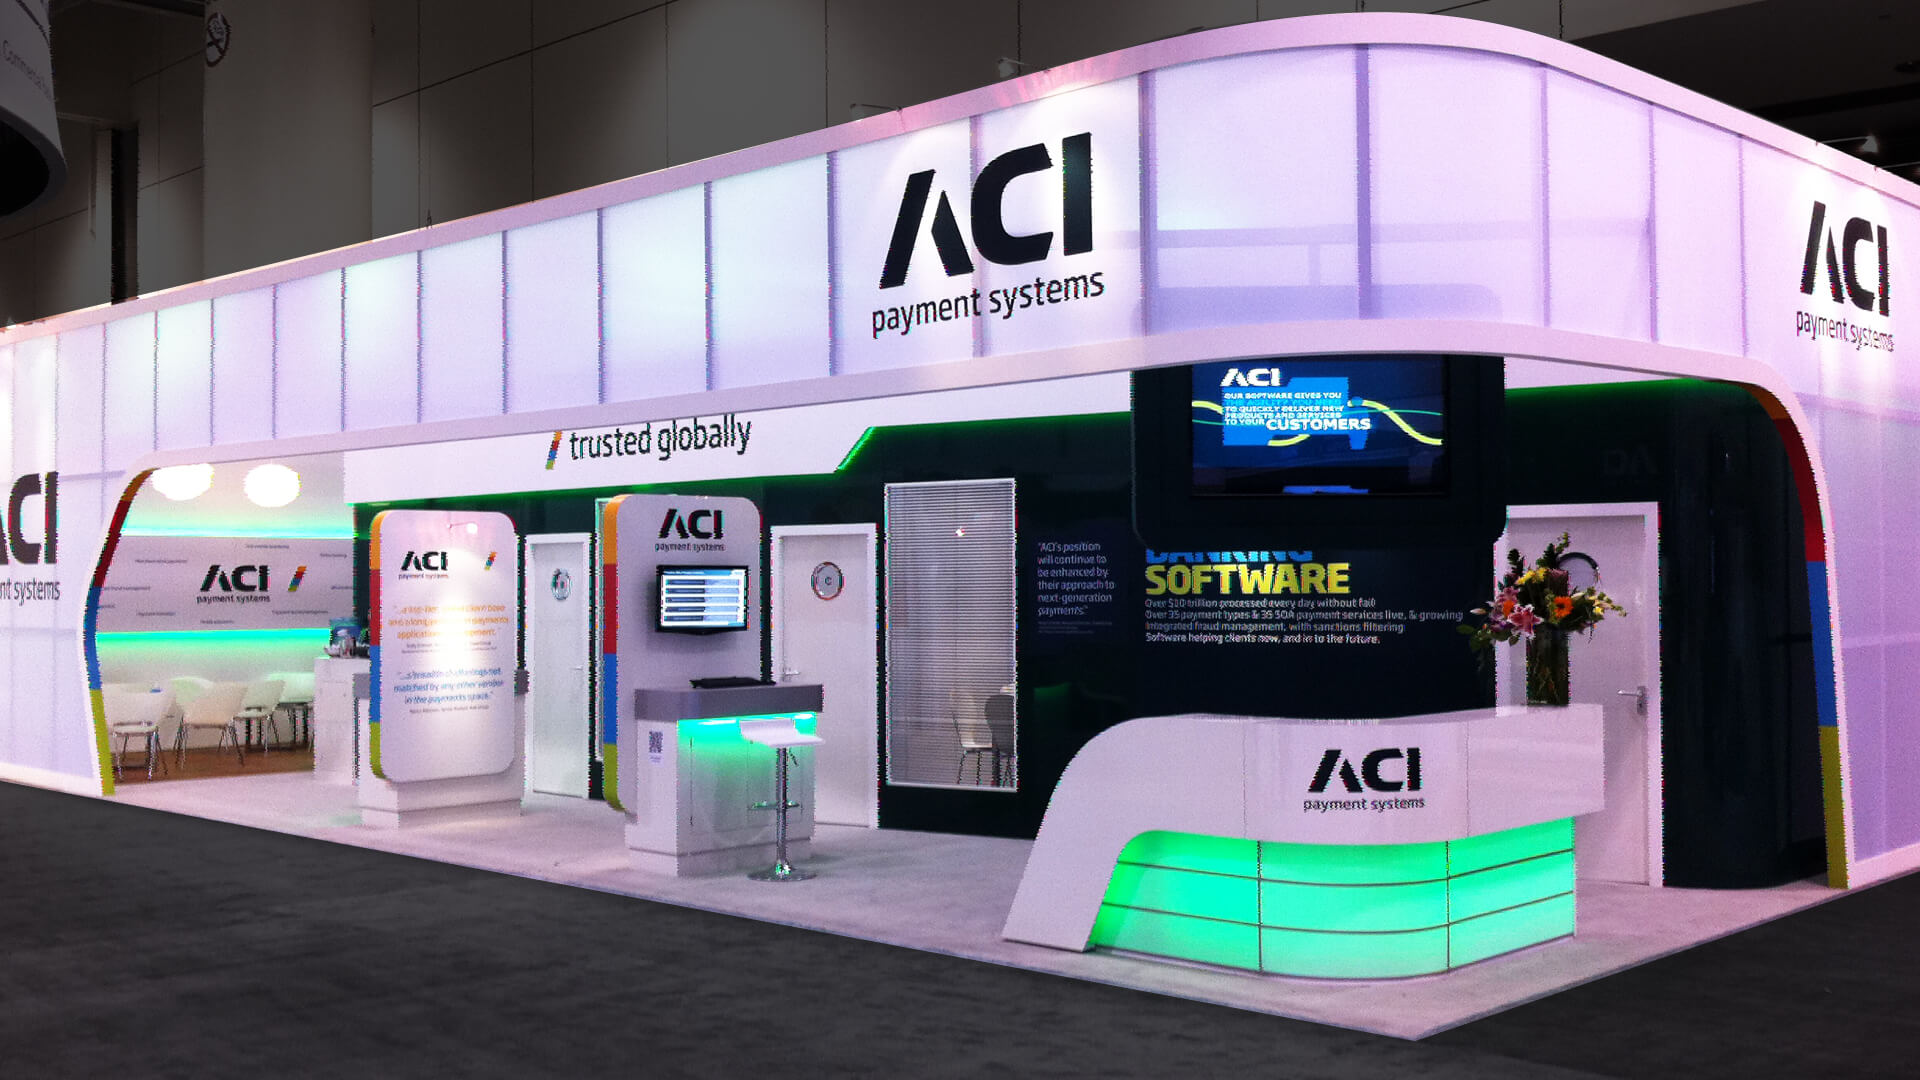 ACI payment systems brand identity messaging exhibtion stand design